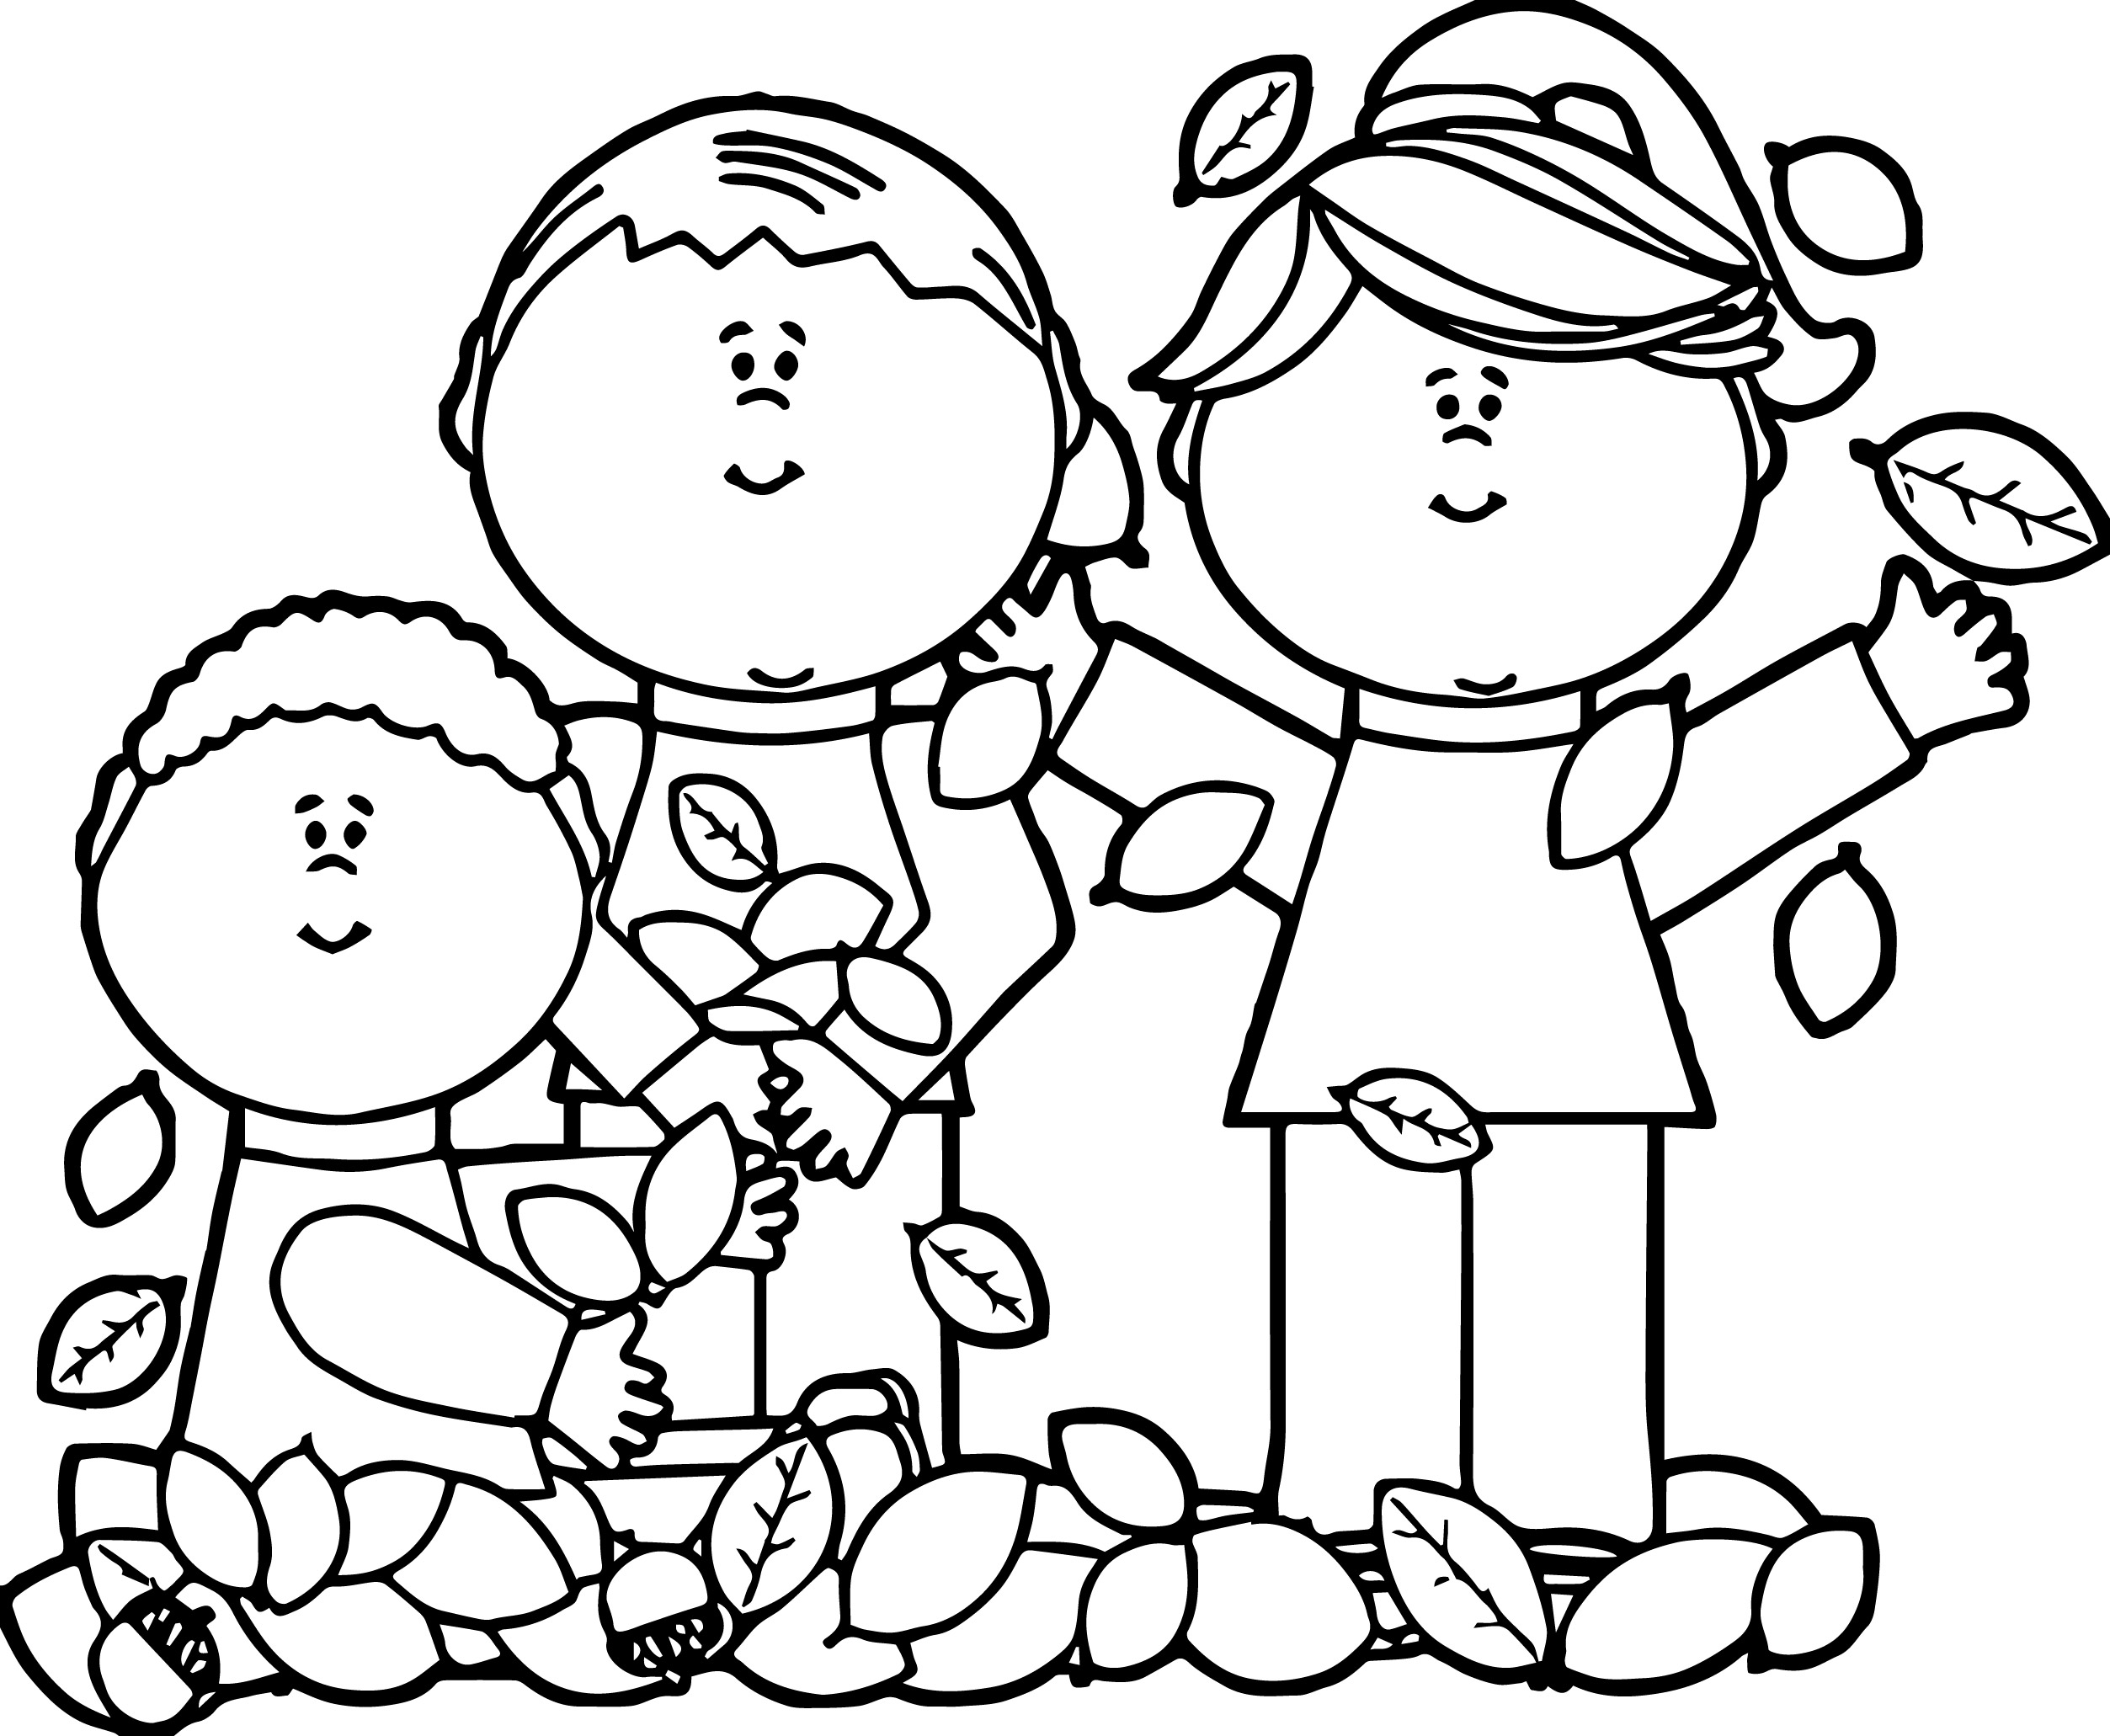 Children Playing Coloring Pages - Photos Coloring Page Ncsudan.Org